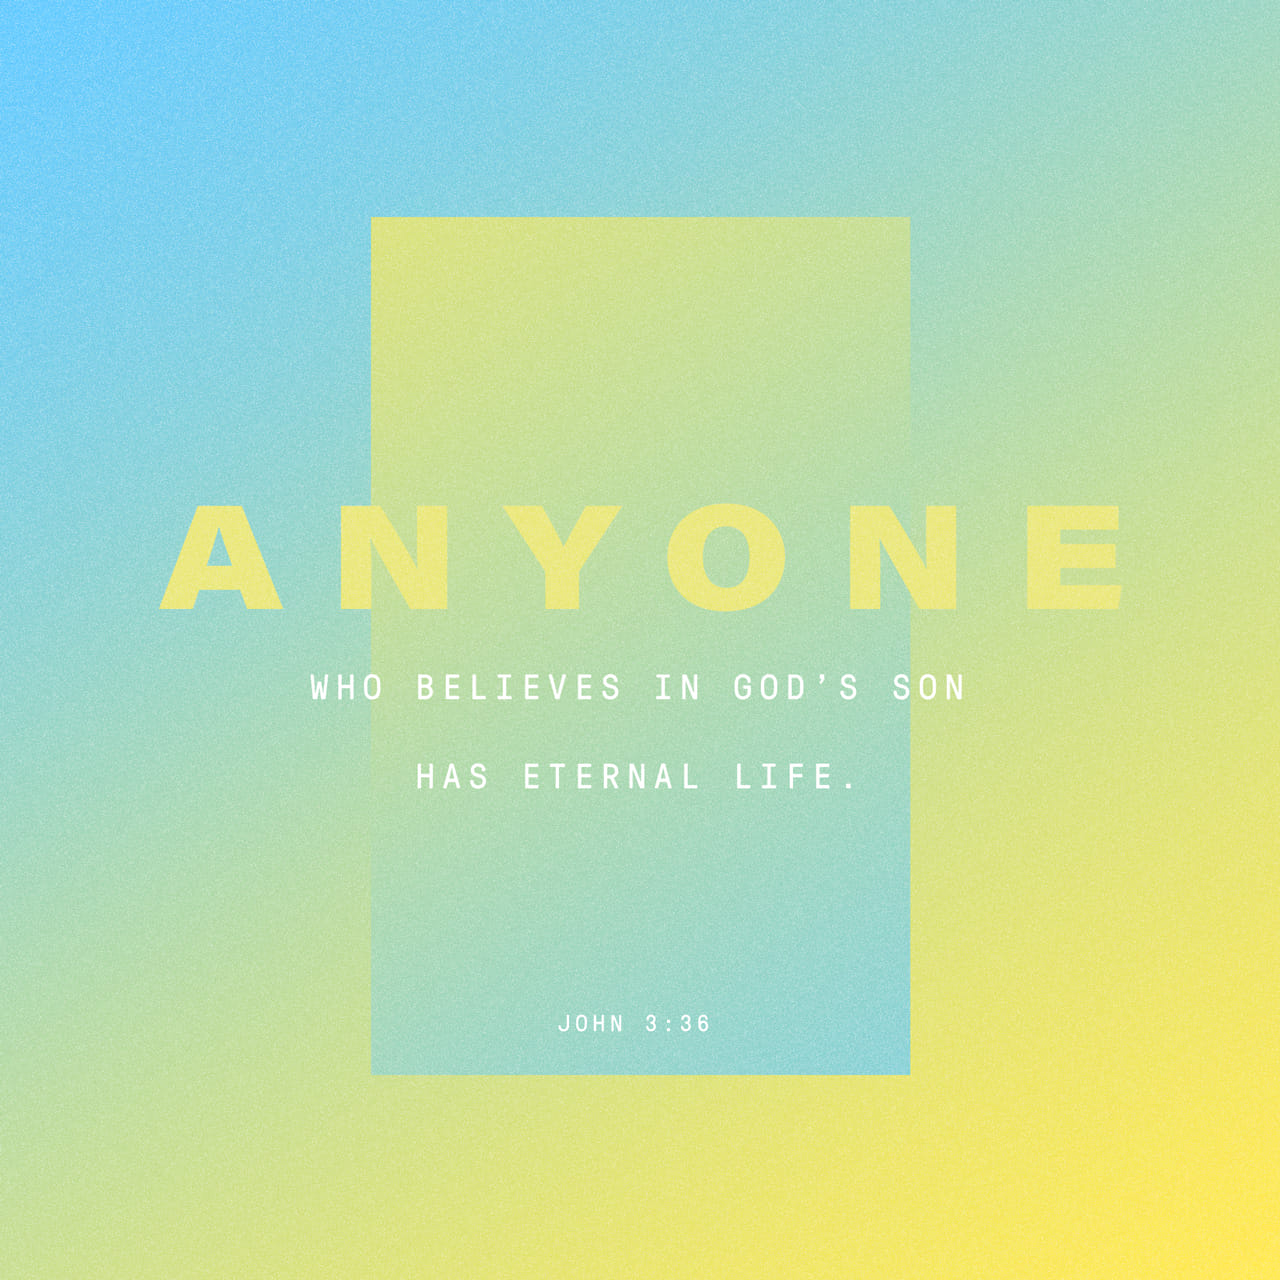 John 3:36 Whoever believes in the Son has eternal life, but whoever rejects the Son will not see life, for God's wrath remains on them. | New International Version (NIV)